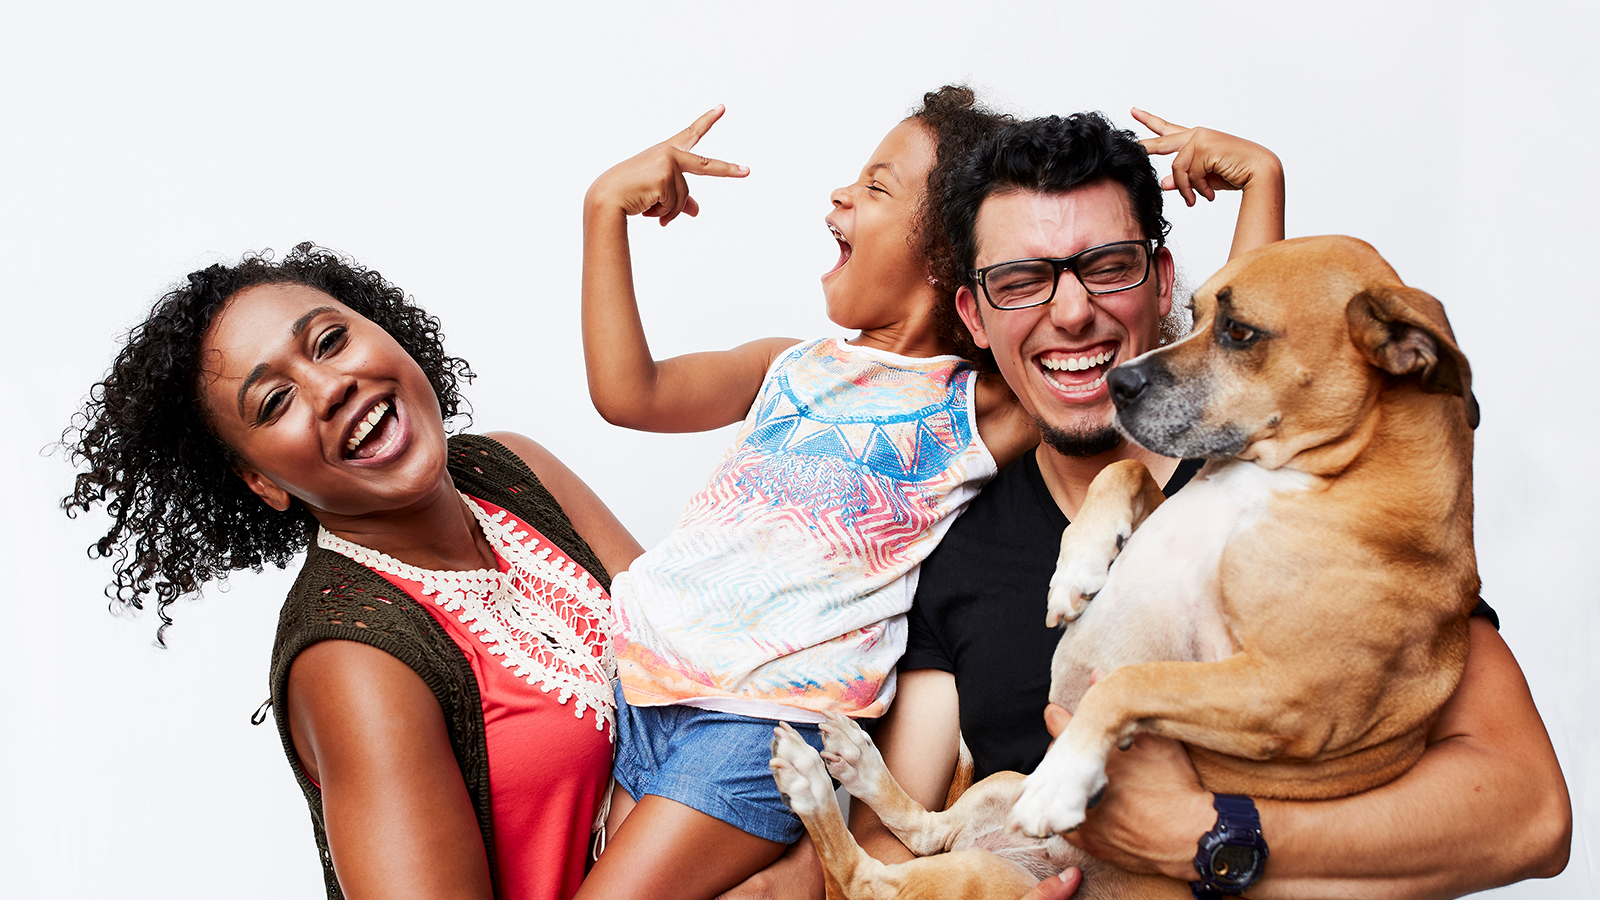 6 things the happiest families all have in common